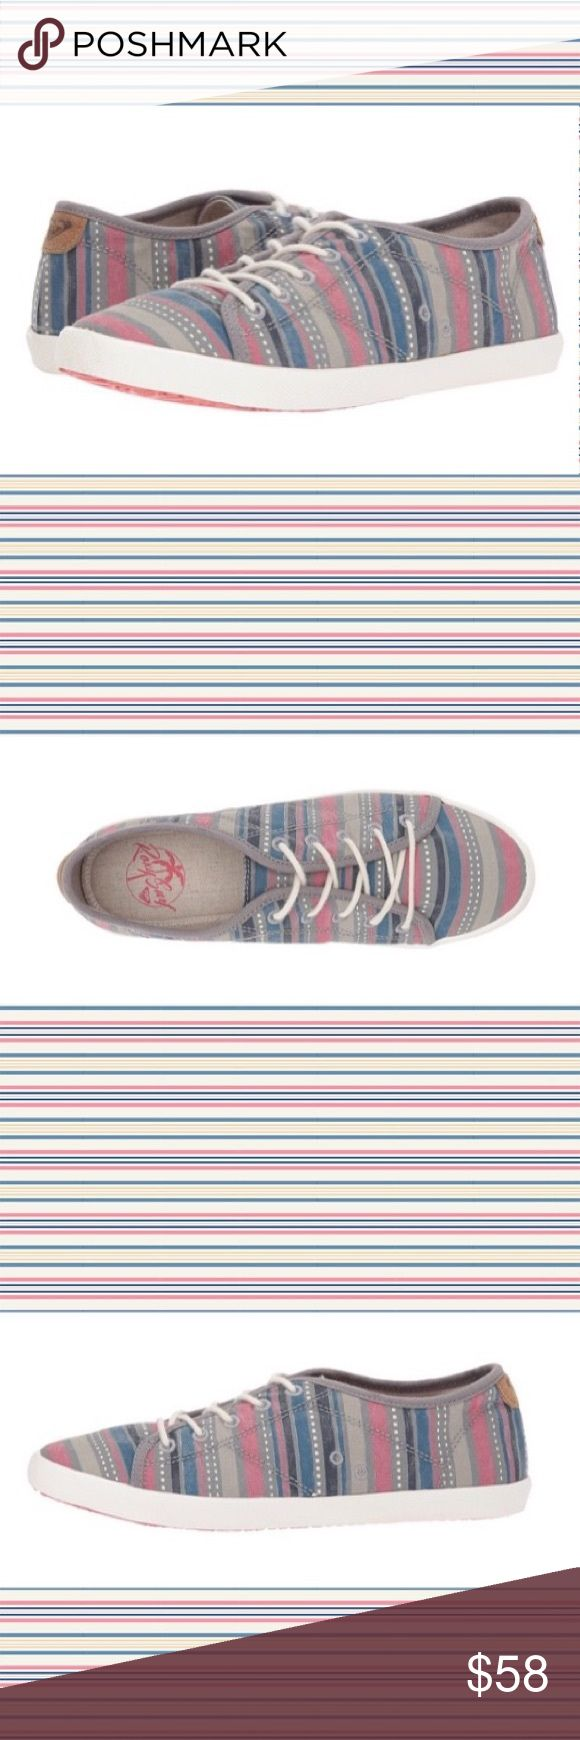 """Roxy multicolored striped pastel """"Memphis"""" sneaker Such a cute tennis shoe for spring! Pastel blue, pinks, and purples combine to form a super cute, subdued statement sneaker from Roxy. Labeled the """"Memphis"""", you won't mind walking in Memphis at all when the Sneakers are this darn adorable. Item is NWT and ships in 3-4 days.   Be Original   Stay Original  Shop @OriginalHailey Roxy Shoes Sneakers"""